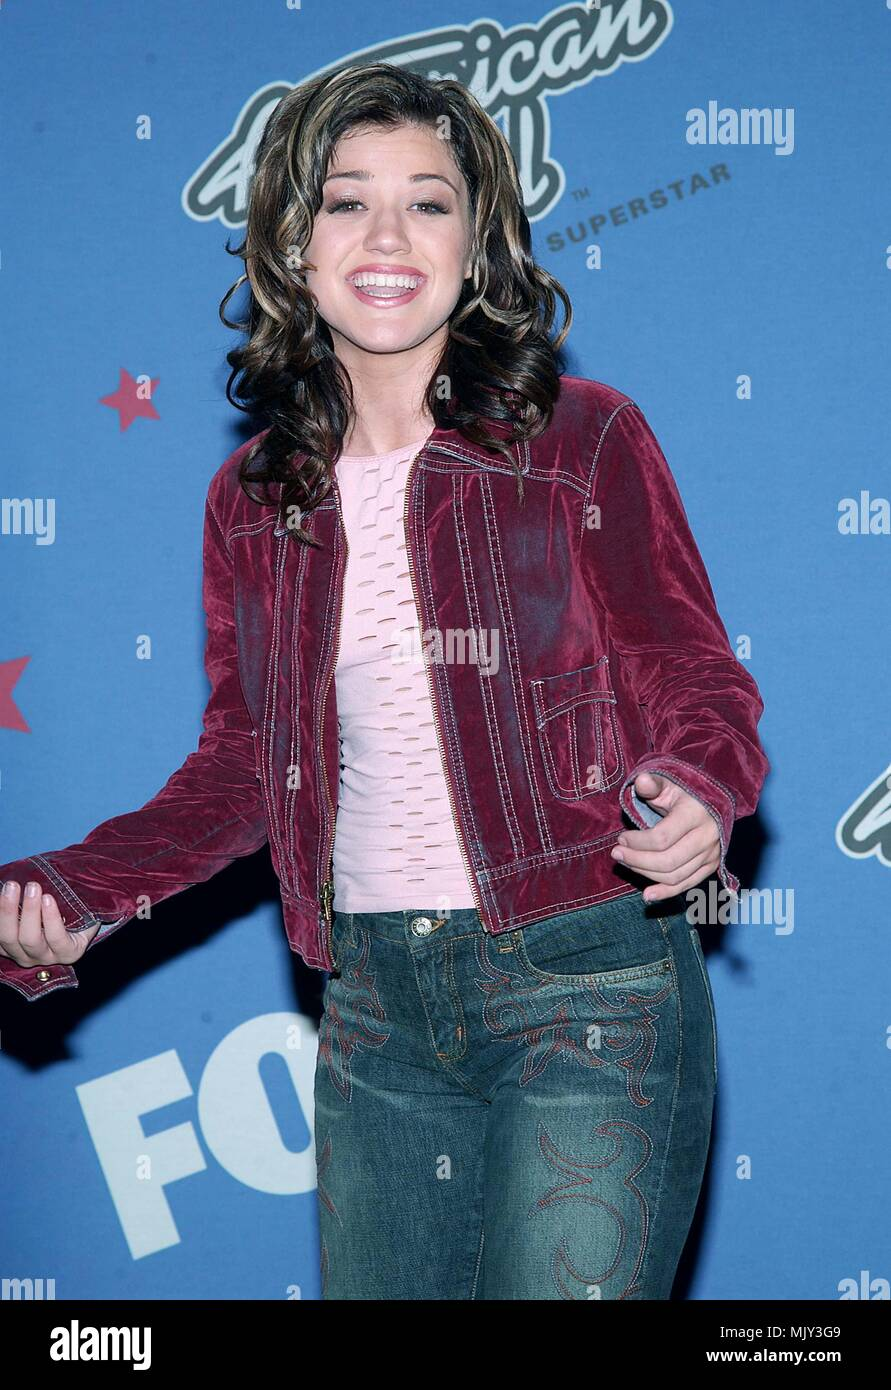 Kelly Clarkson Backstage At The American Idol Finale At The Kodak Theatre In Los Angeles September 4 2002 Clarksonkelly02b Jpgclarksonkelly02b Event In Hollywood Life California Red Carpet Event Vertical Usa Film